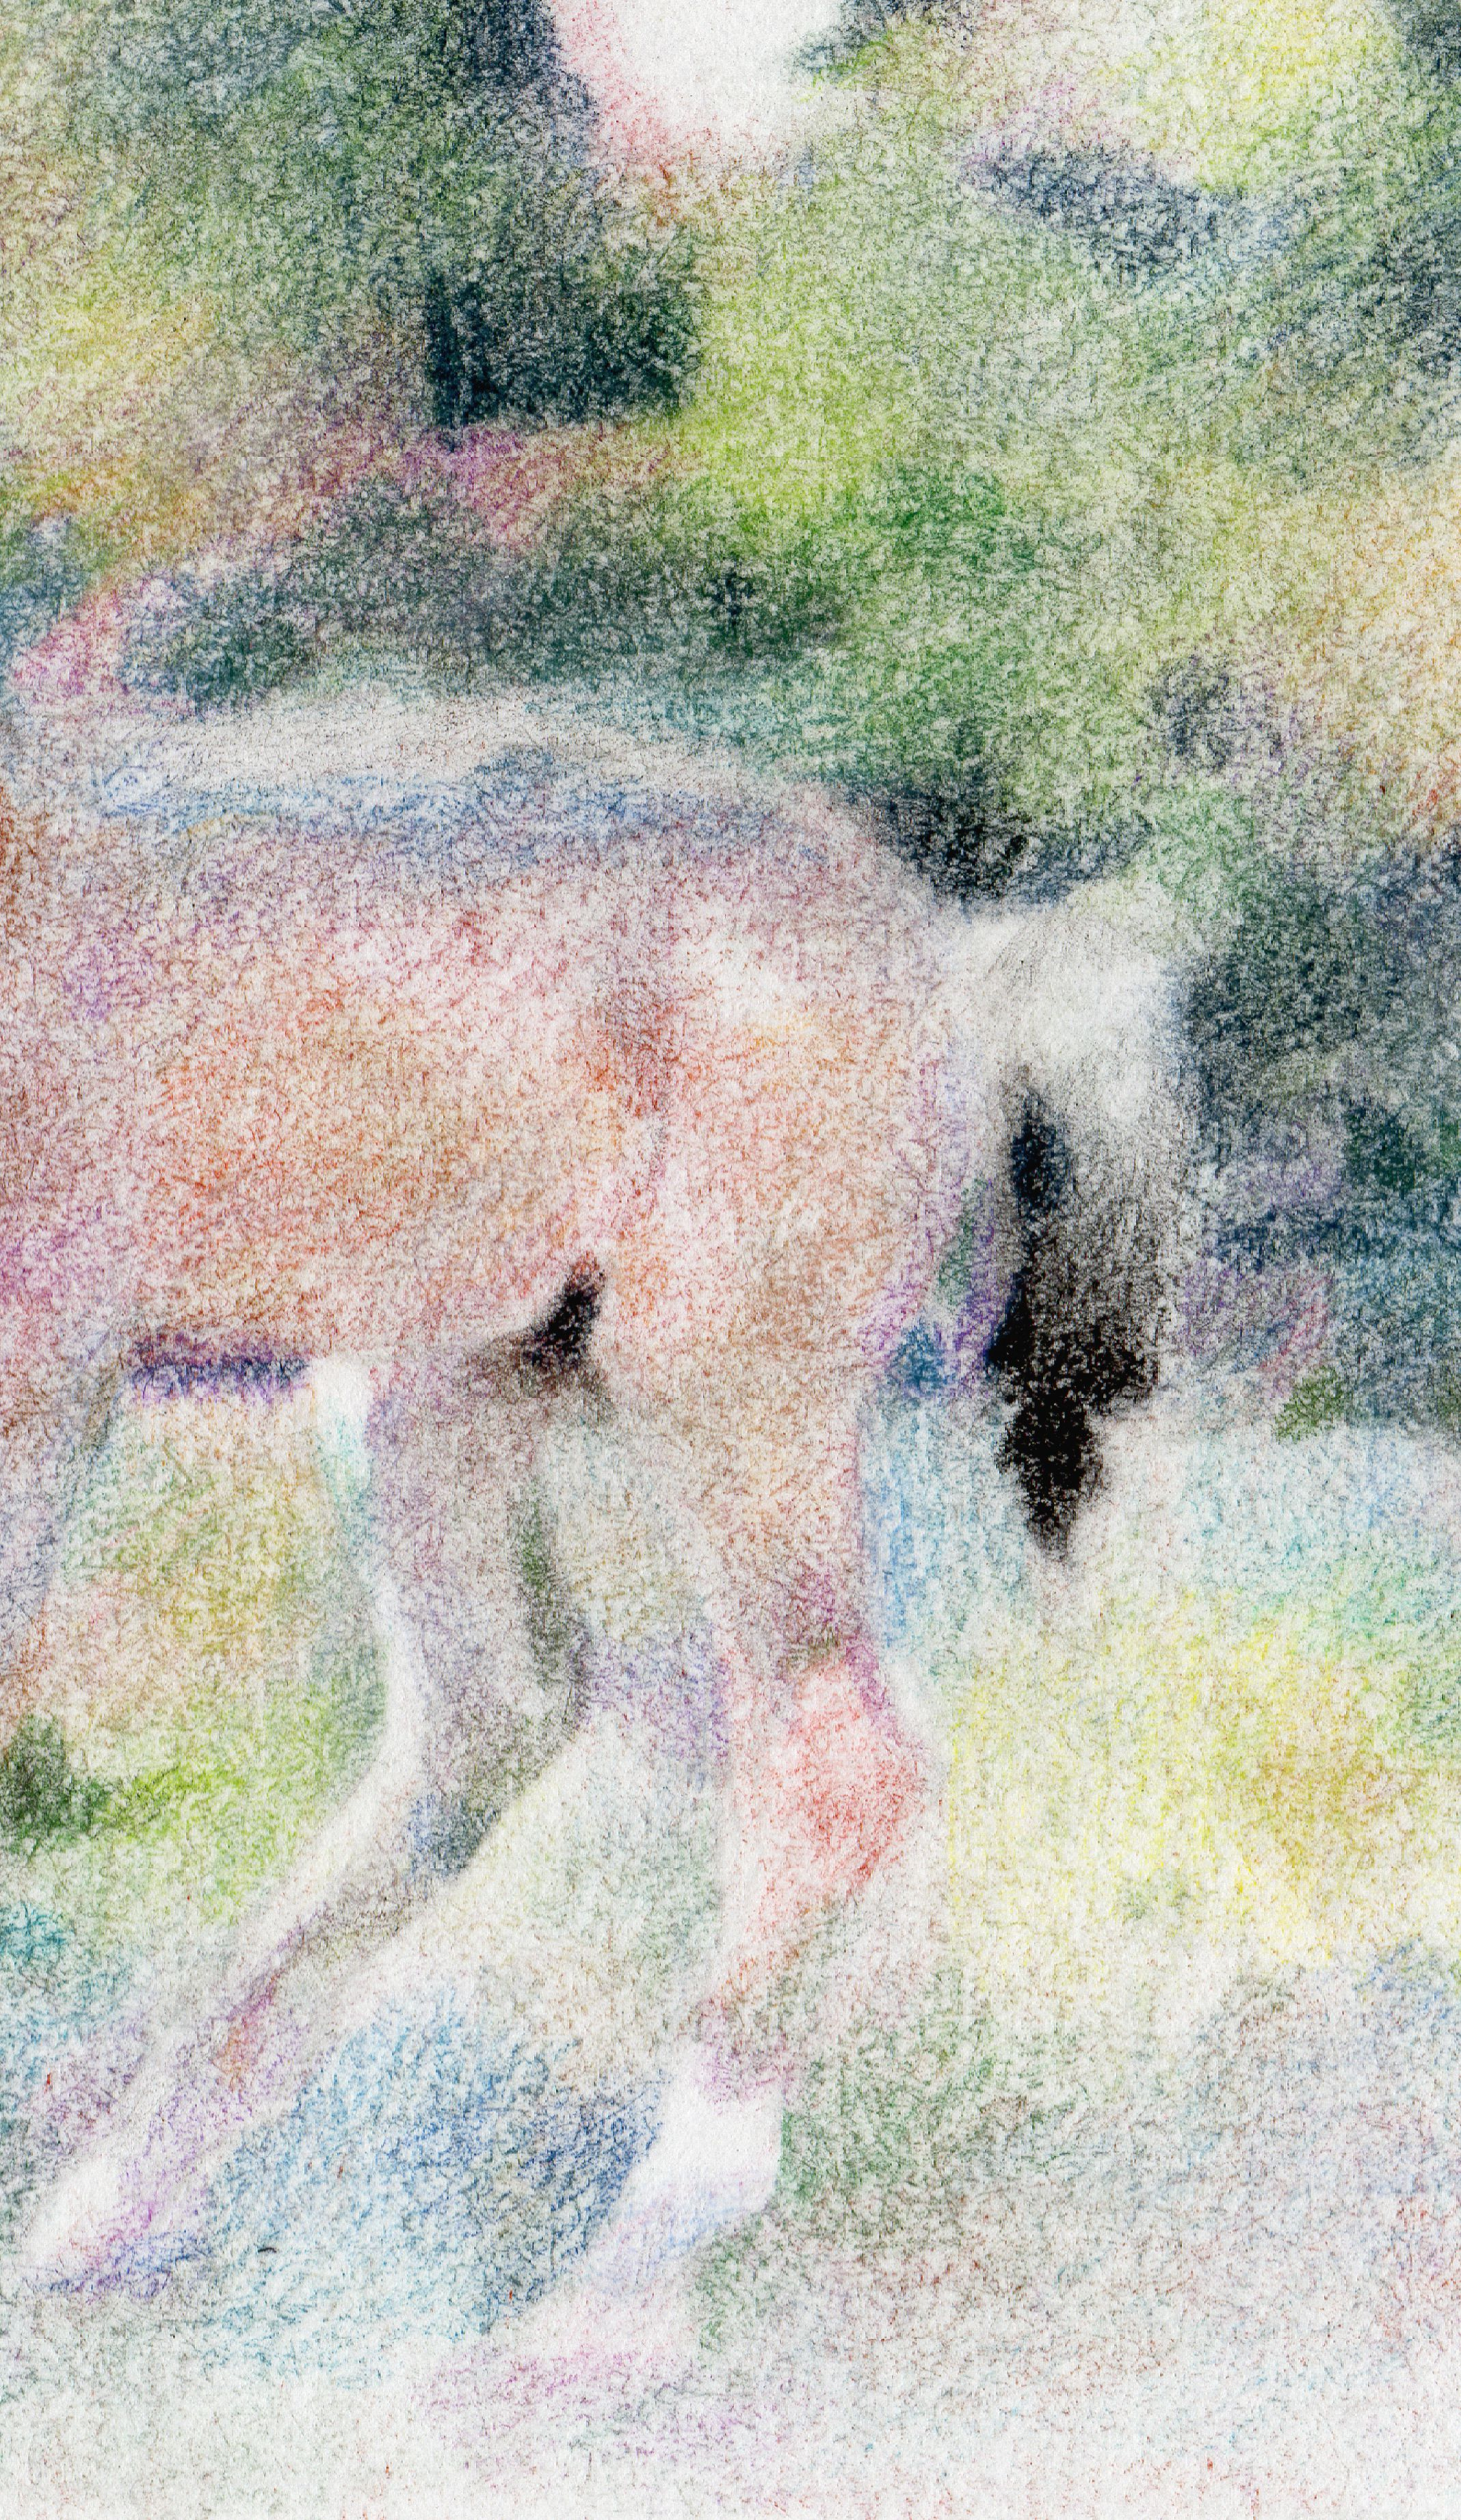 horses original visual illustration baby dry foal rainbow soft nursary child positive drawing picture pastel peaceful art